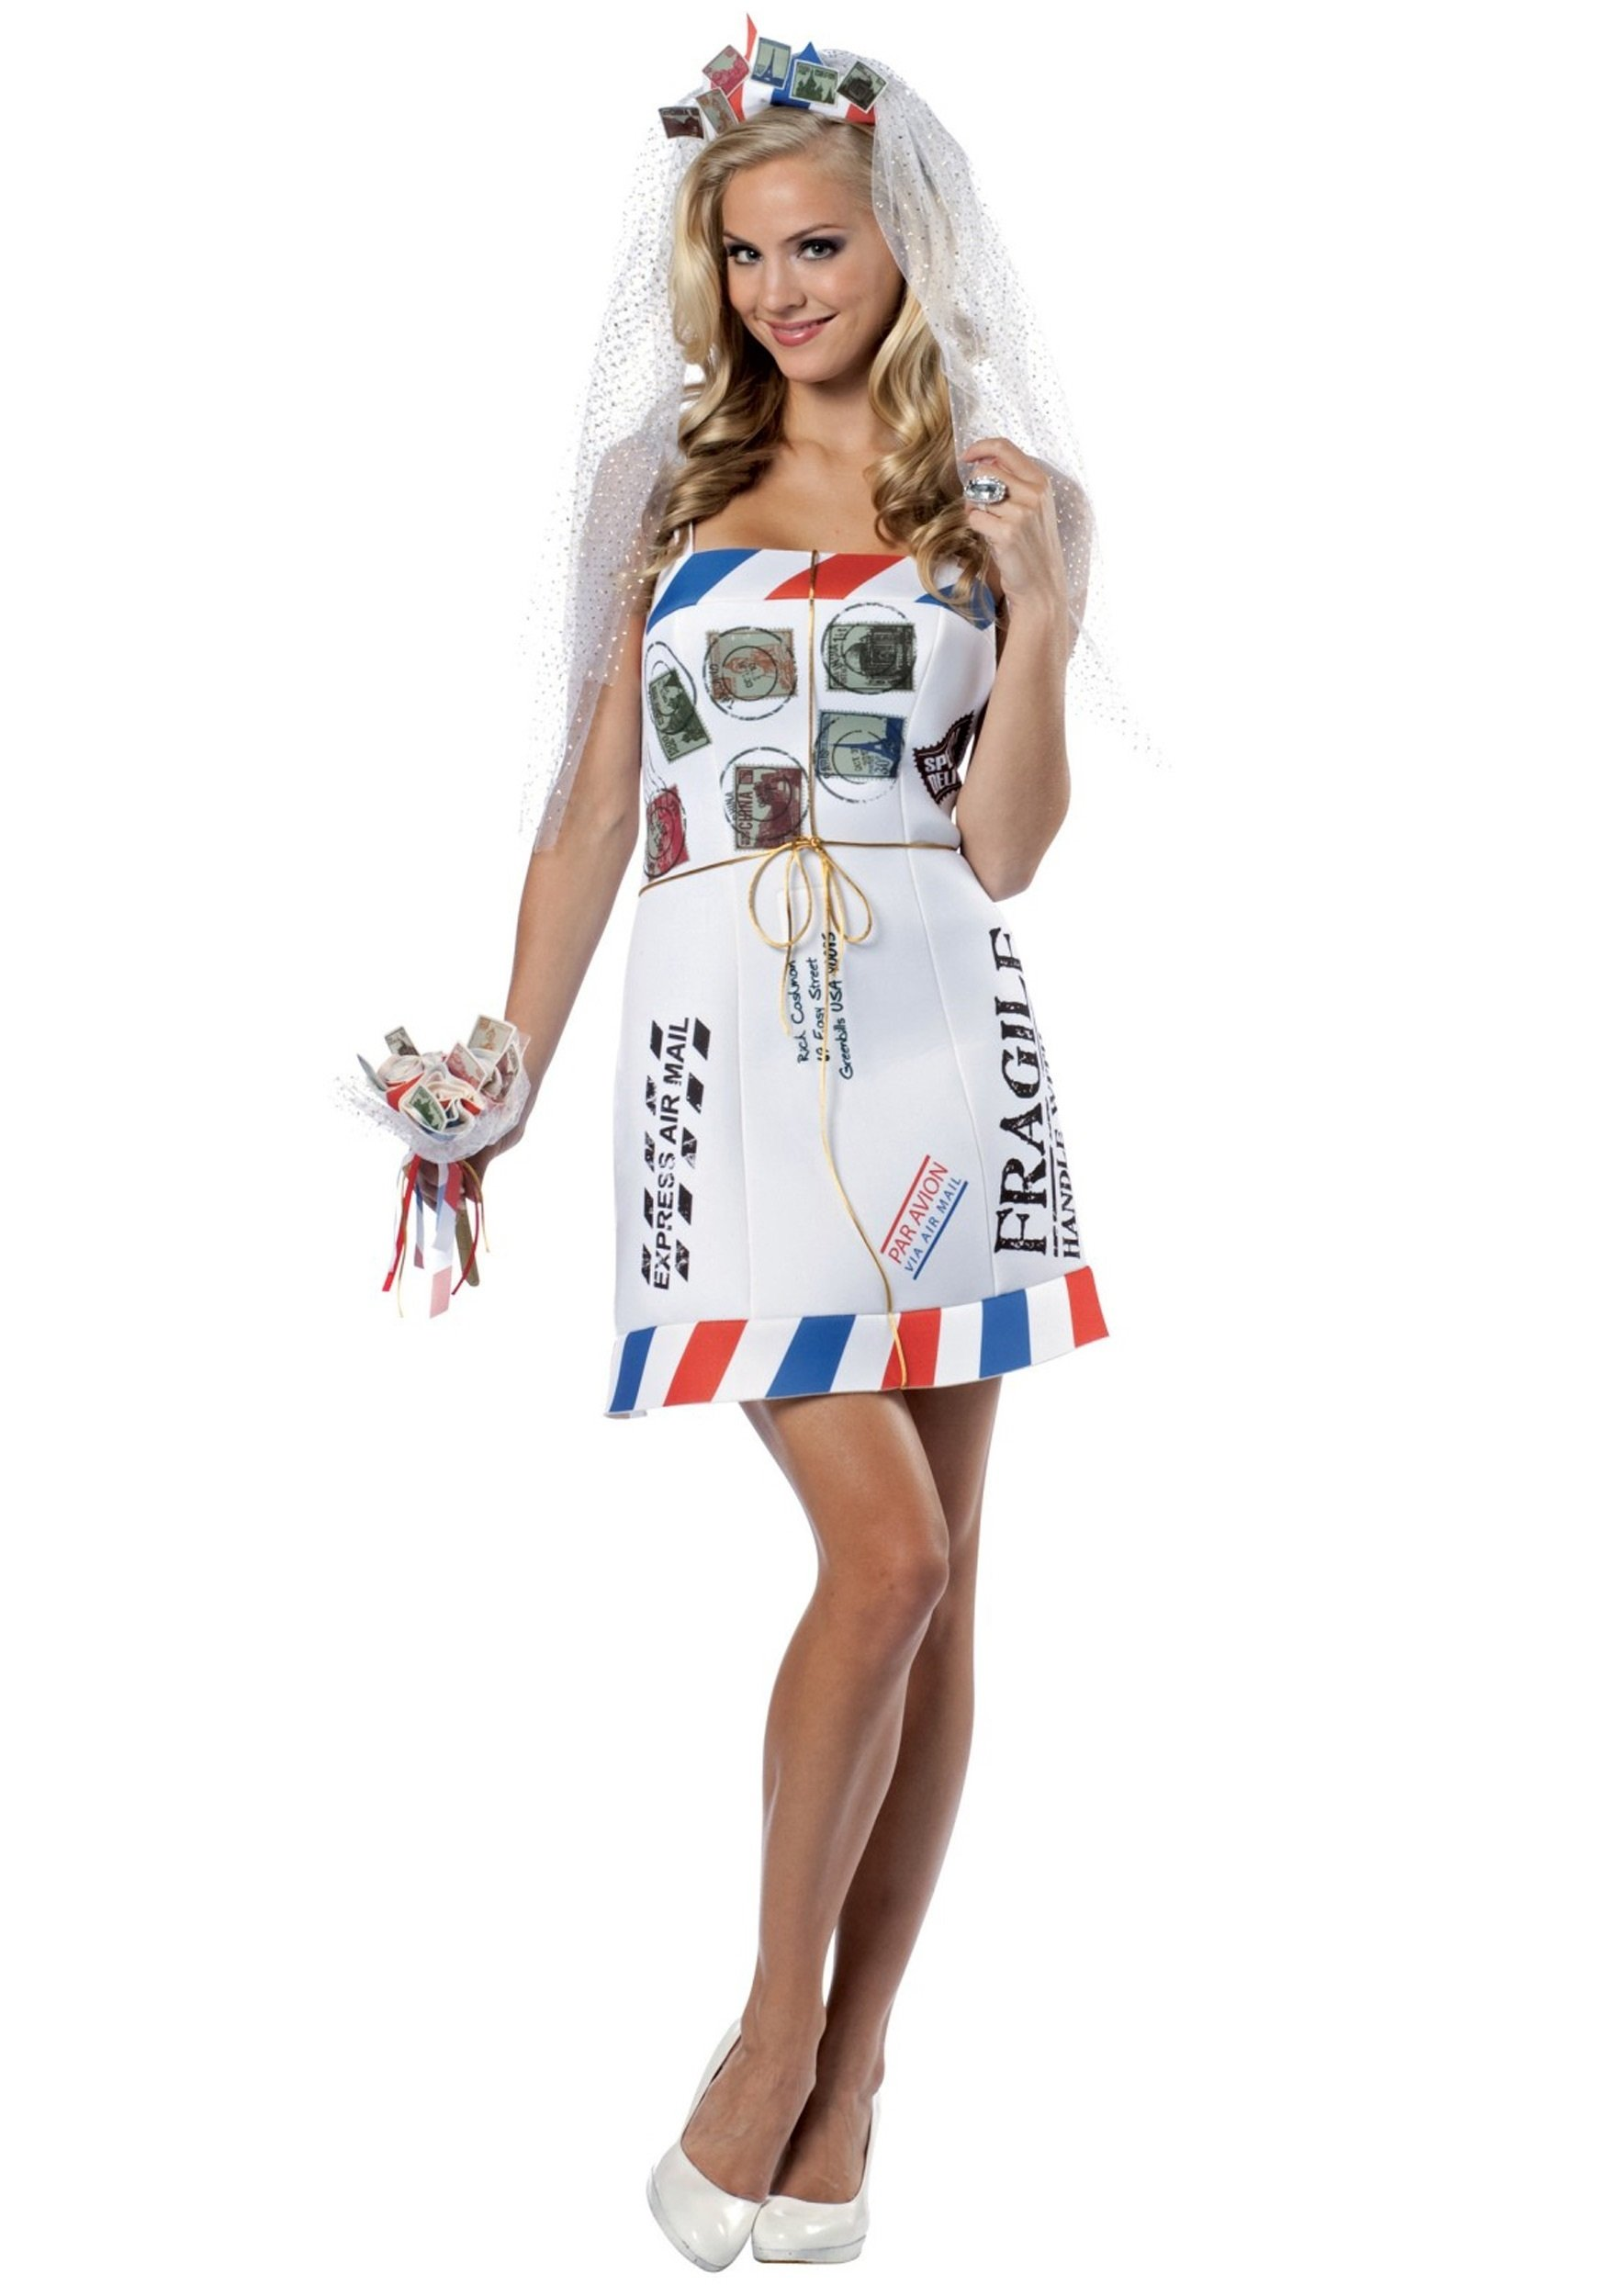 10 Famous Funny Costume Ideas For Women funny mail order bride costume funny halloween costume ideas for women 5 2021